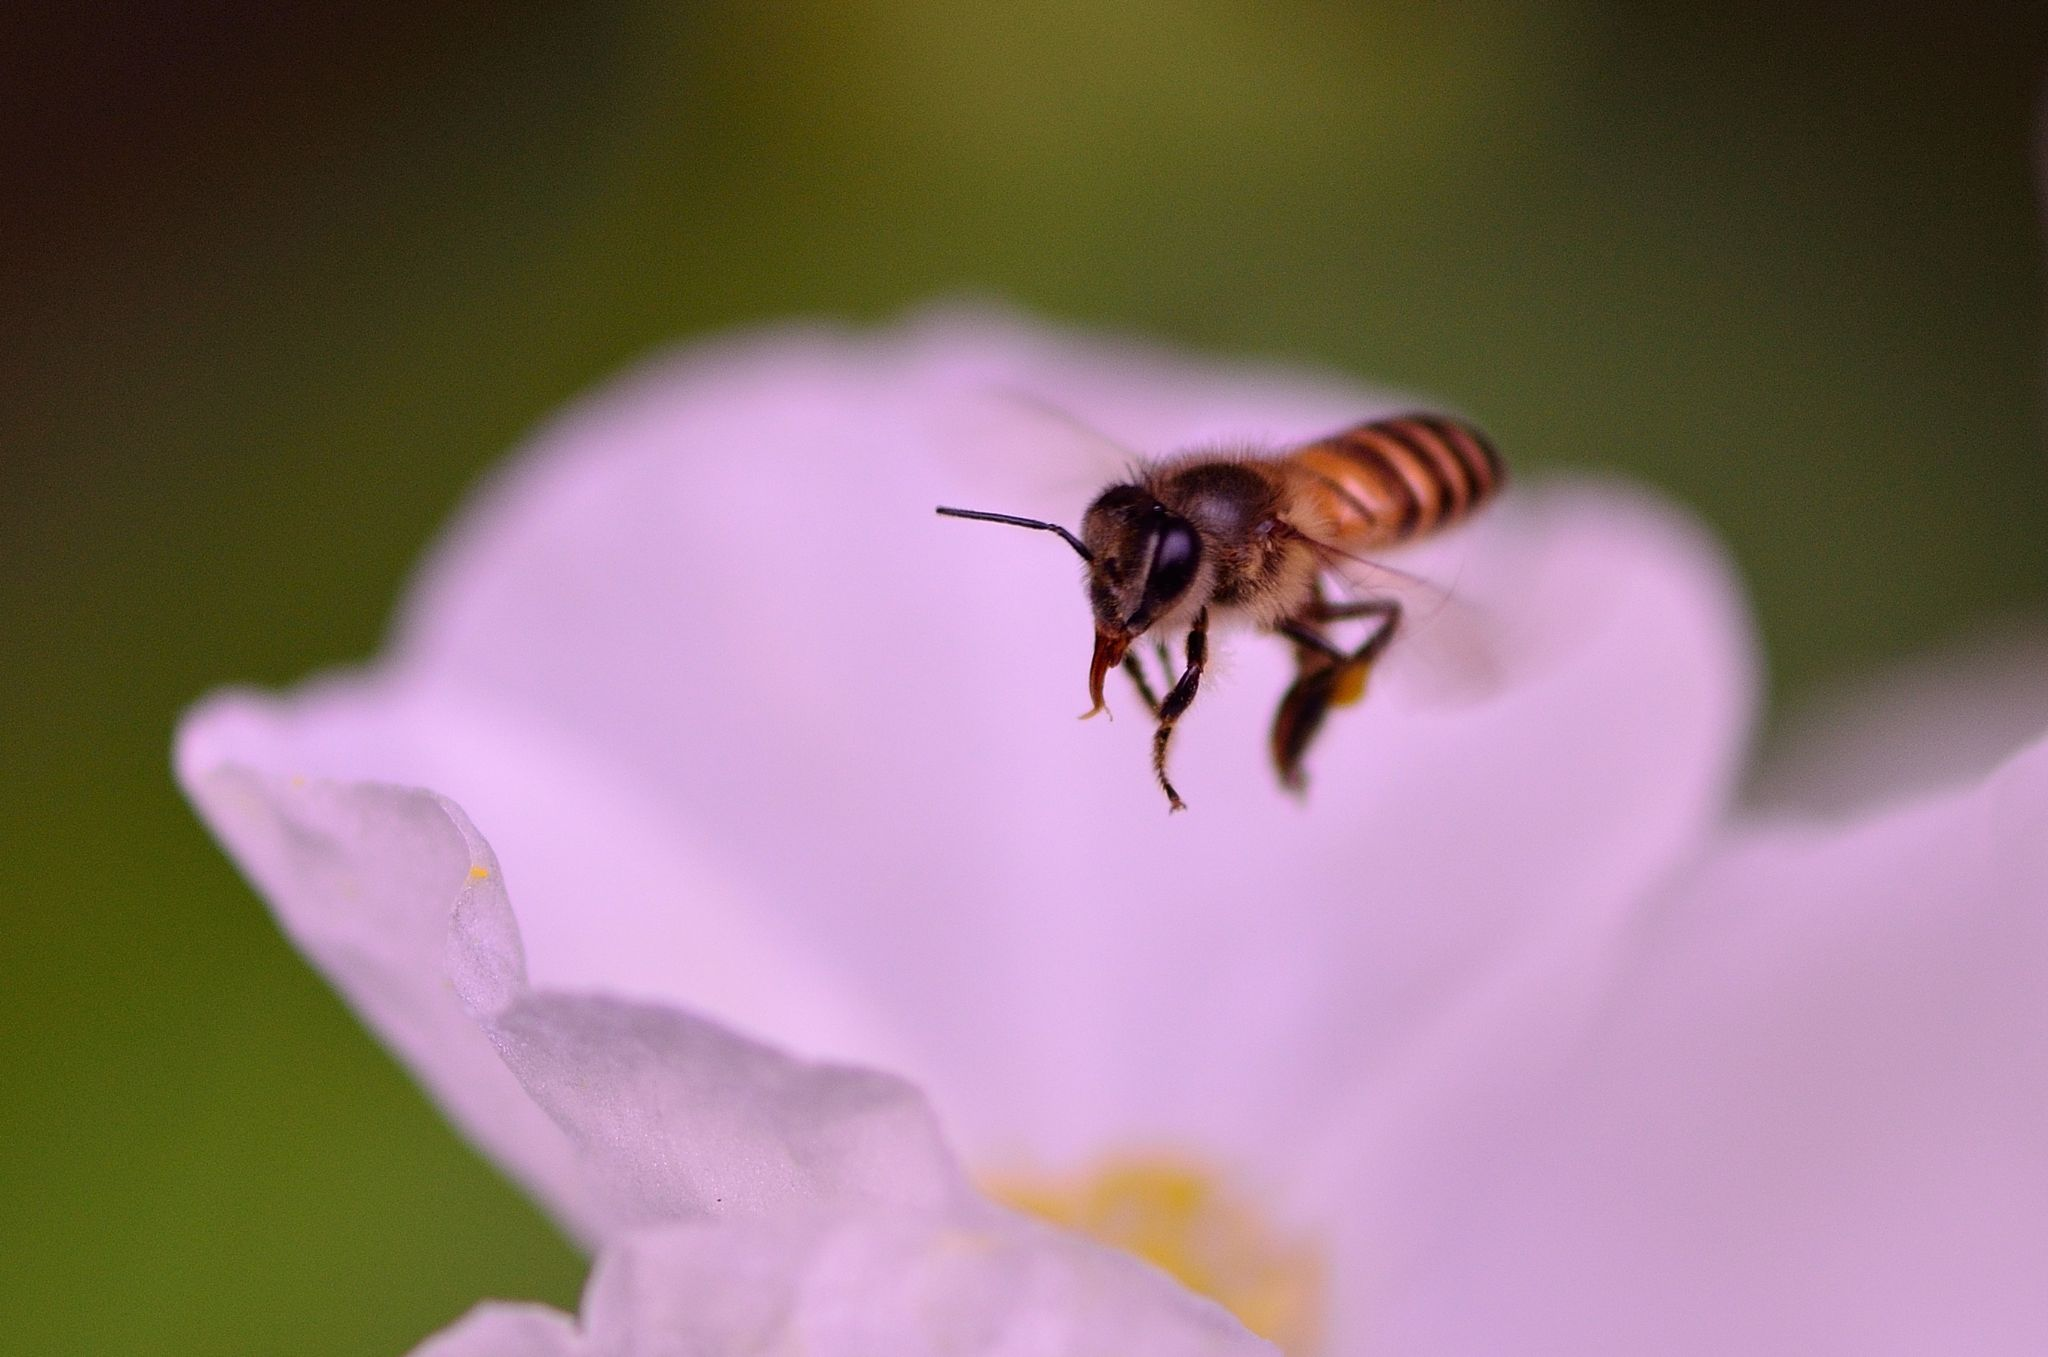 Hovering by Yulius B Susilo